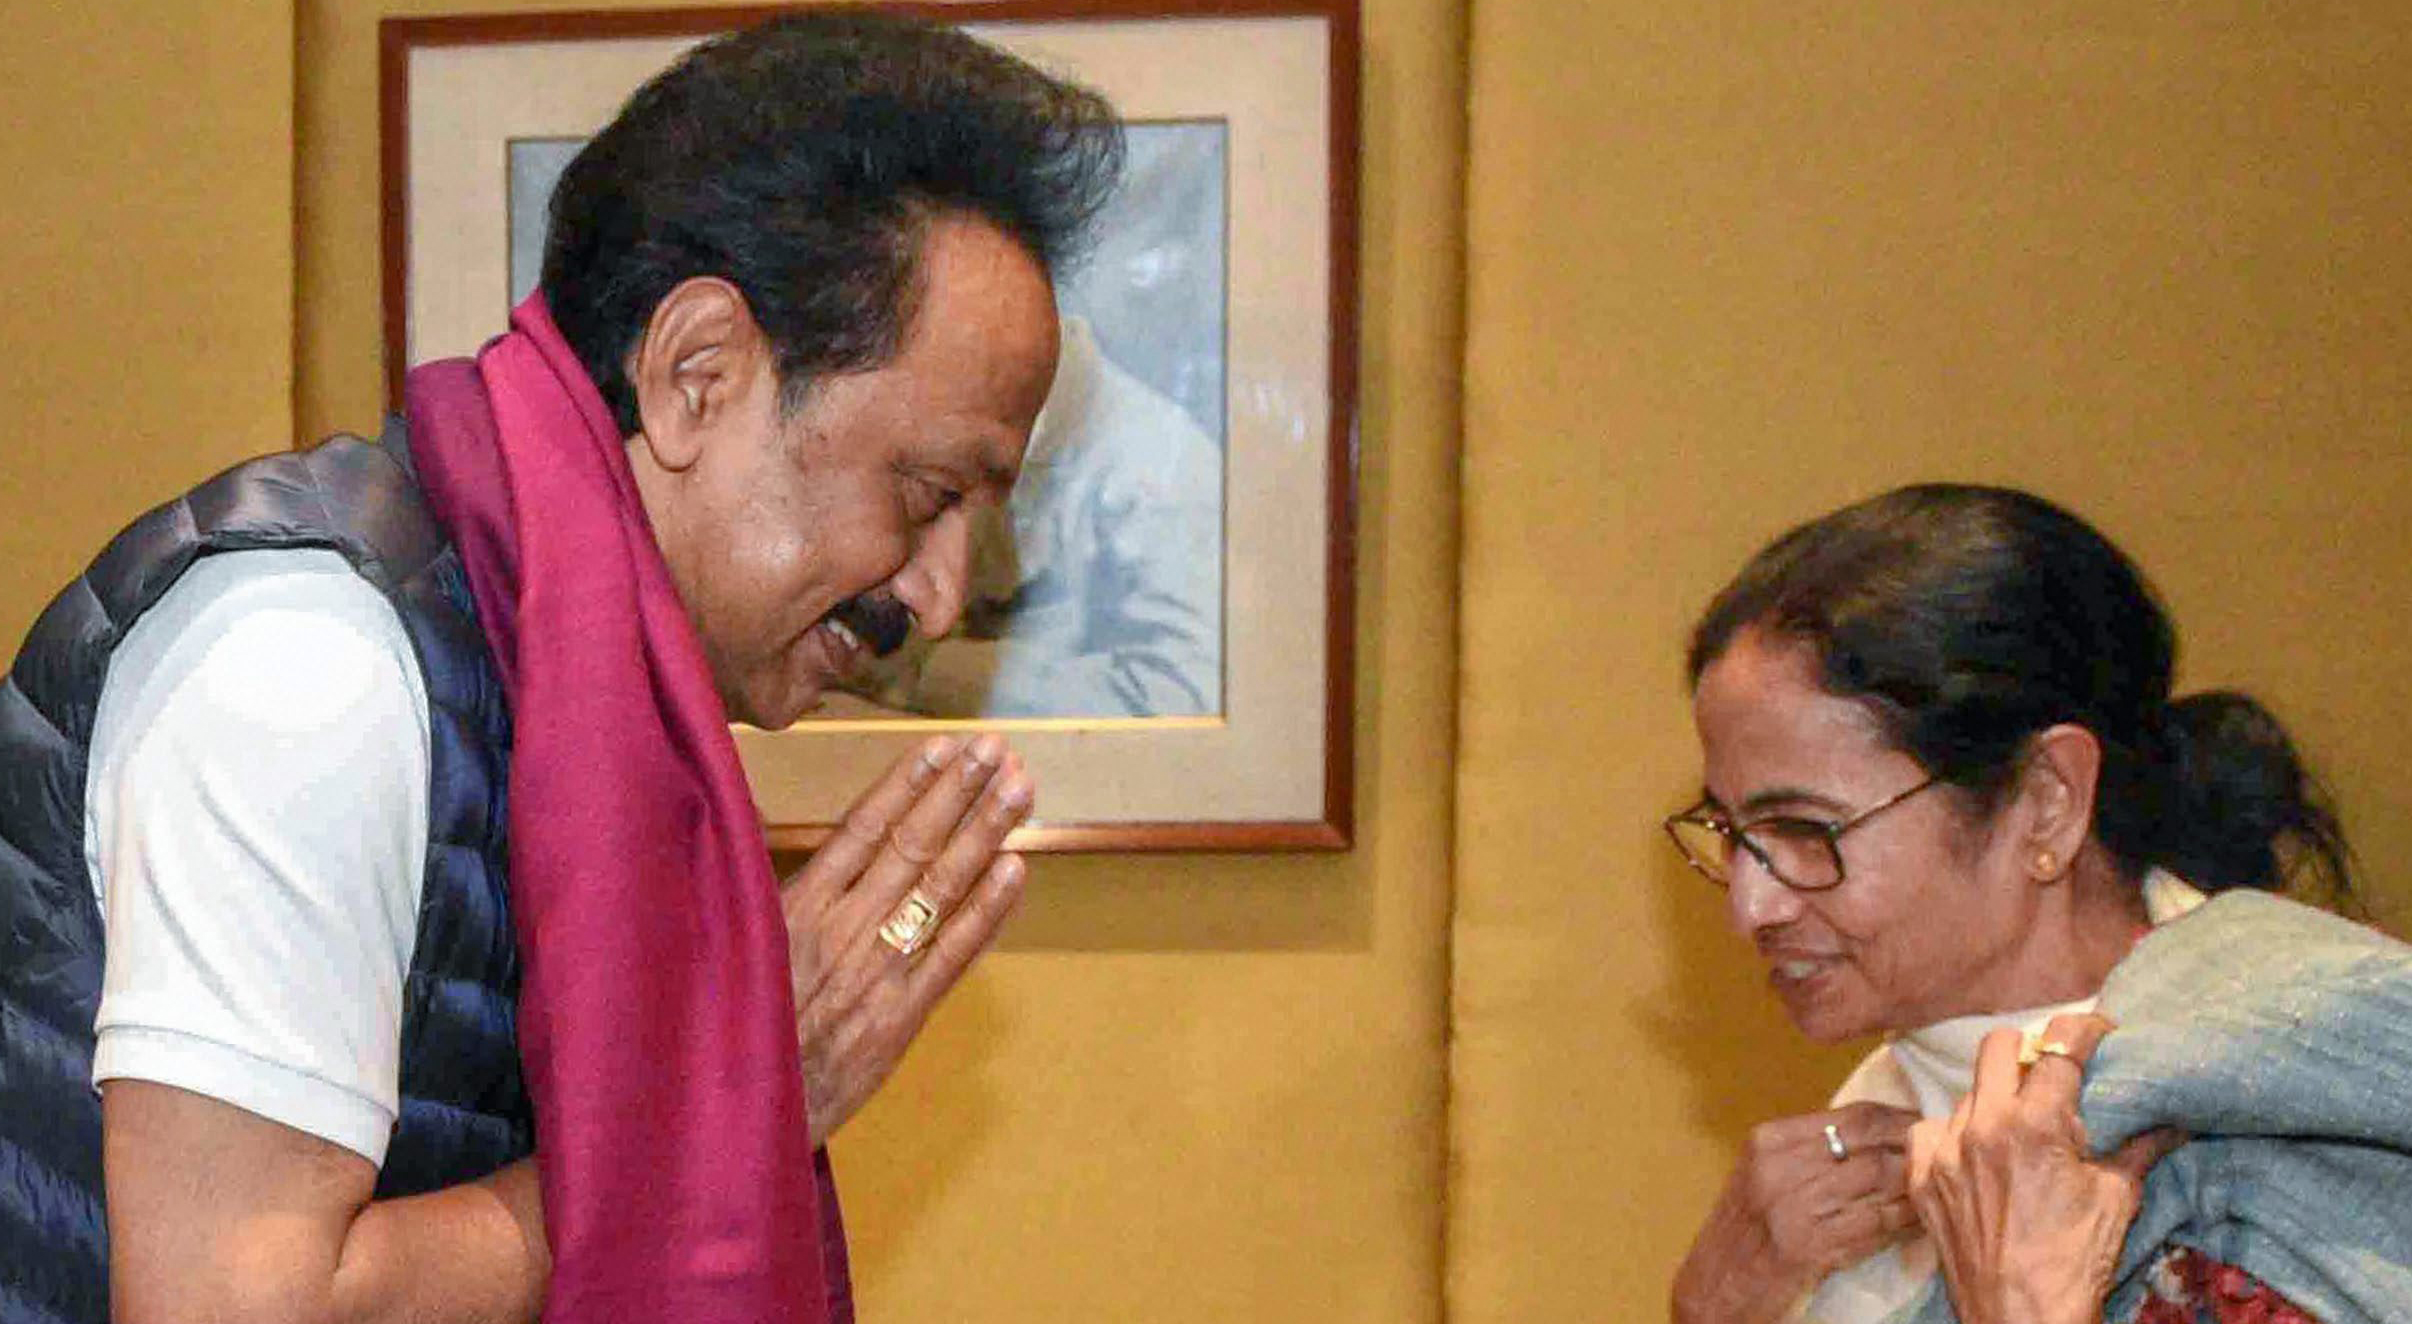 West Bengal Chief Minister Mamata Banerjee exchanges greetings with DMK President M.K. Stalin at a hotel in Calcutta on Friday, January 18, 2019.